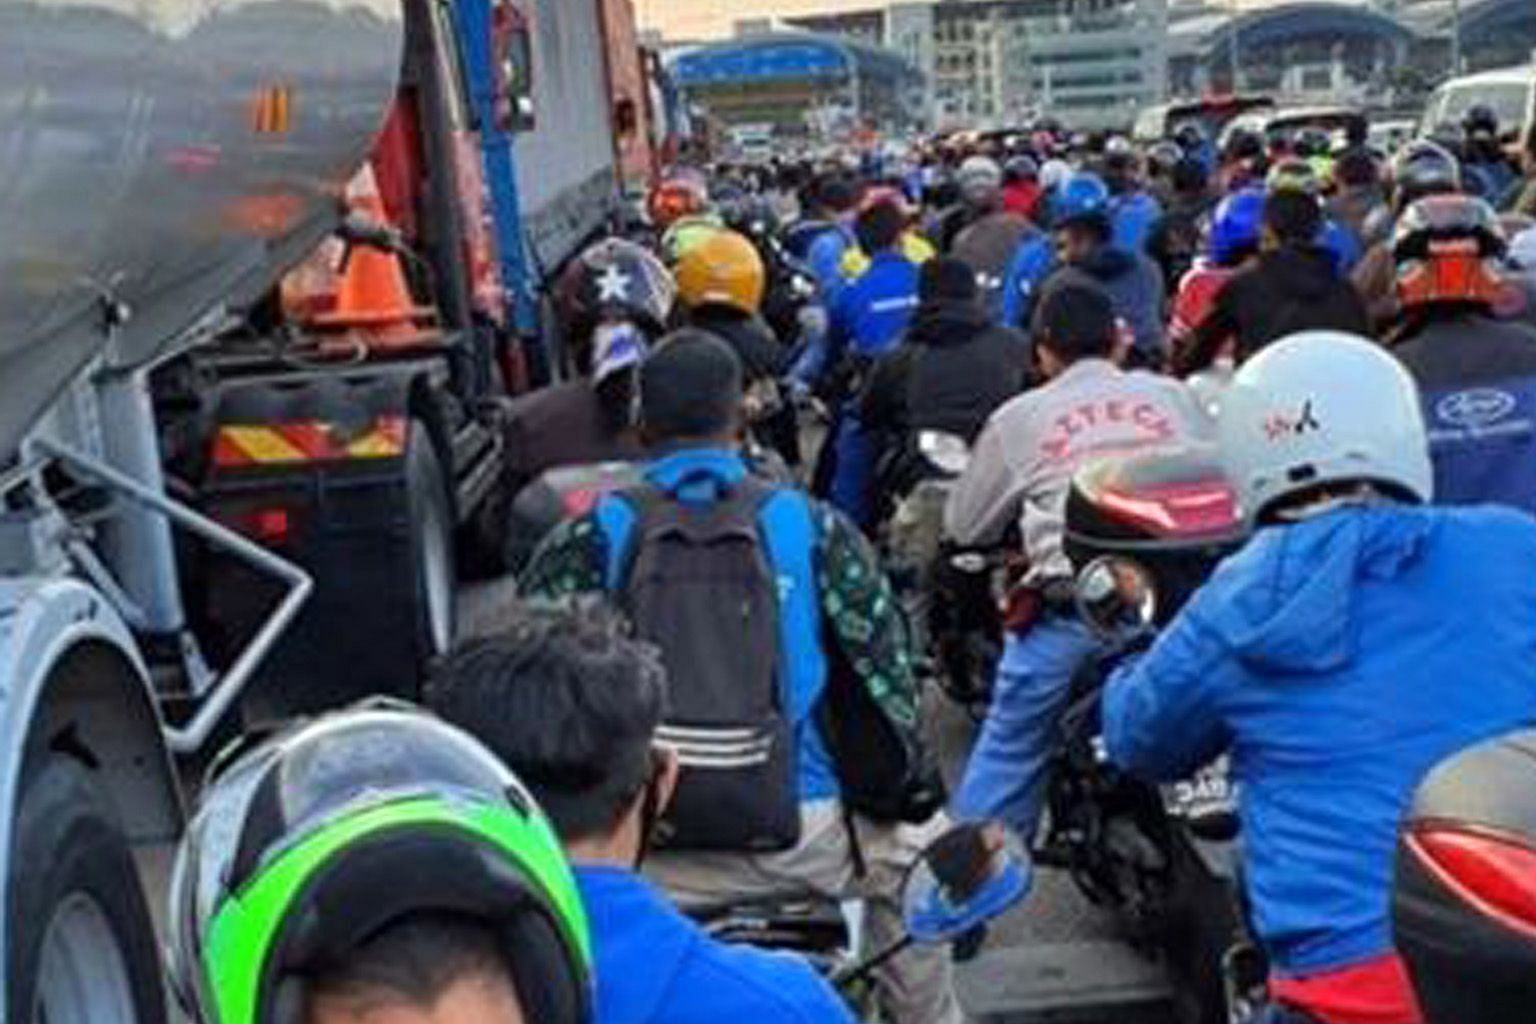 Frustrated motorists turned to social media platforms to post pictures of the traffic jam at Tuas Checkpoint, with some netizens complaining that they needed a toilet break.